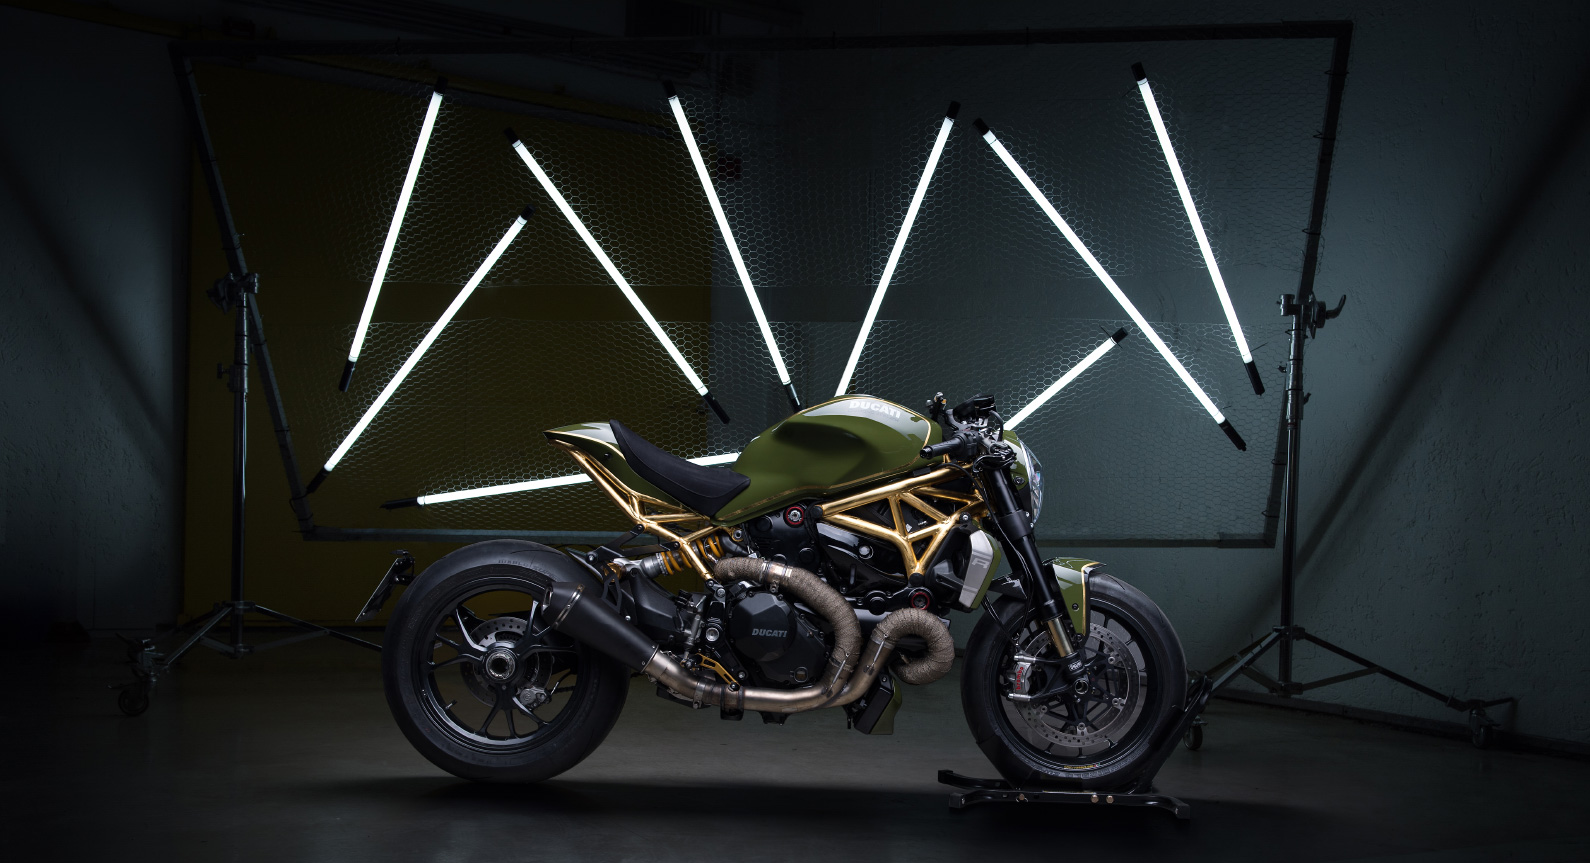 Release The Monster: Diamond Atelier's Outrageous 1200R With 24K Gold Accents